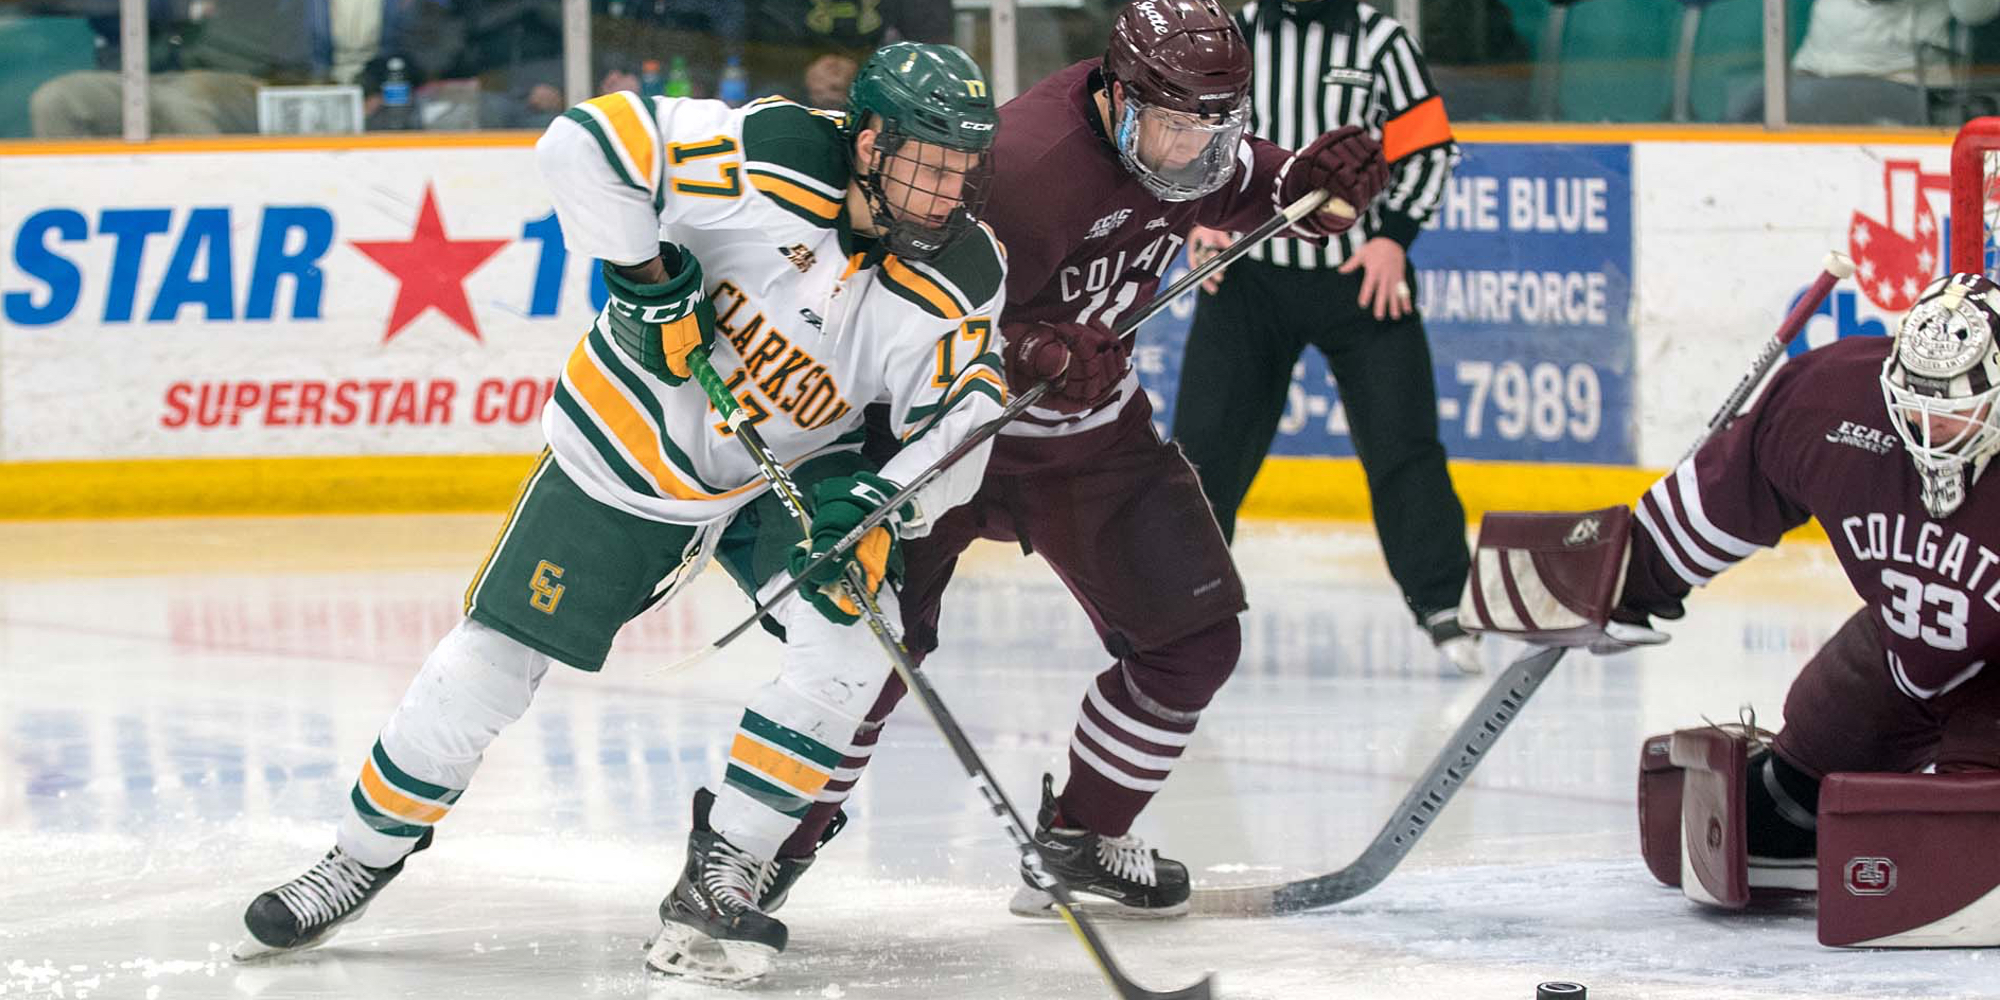 Clarkson Settles for Tie With Colgate